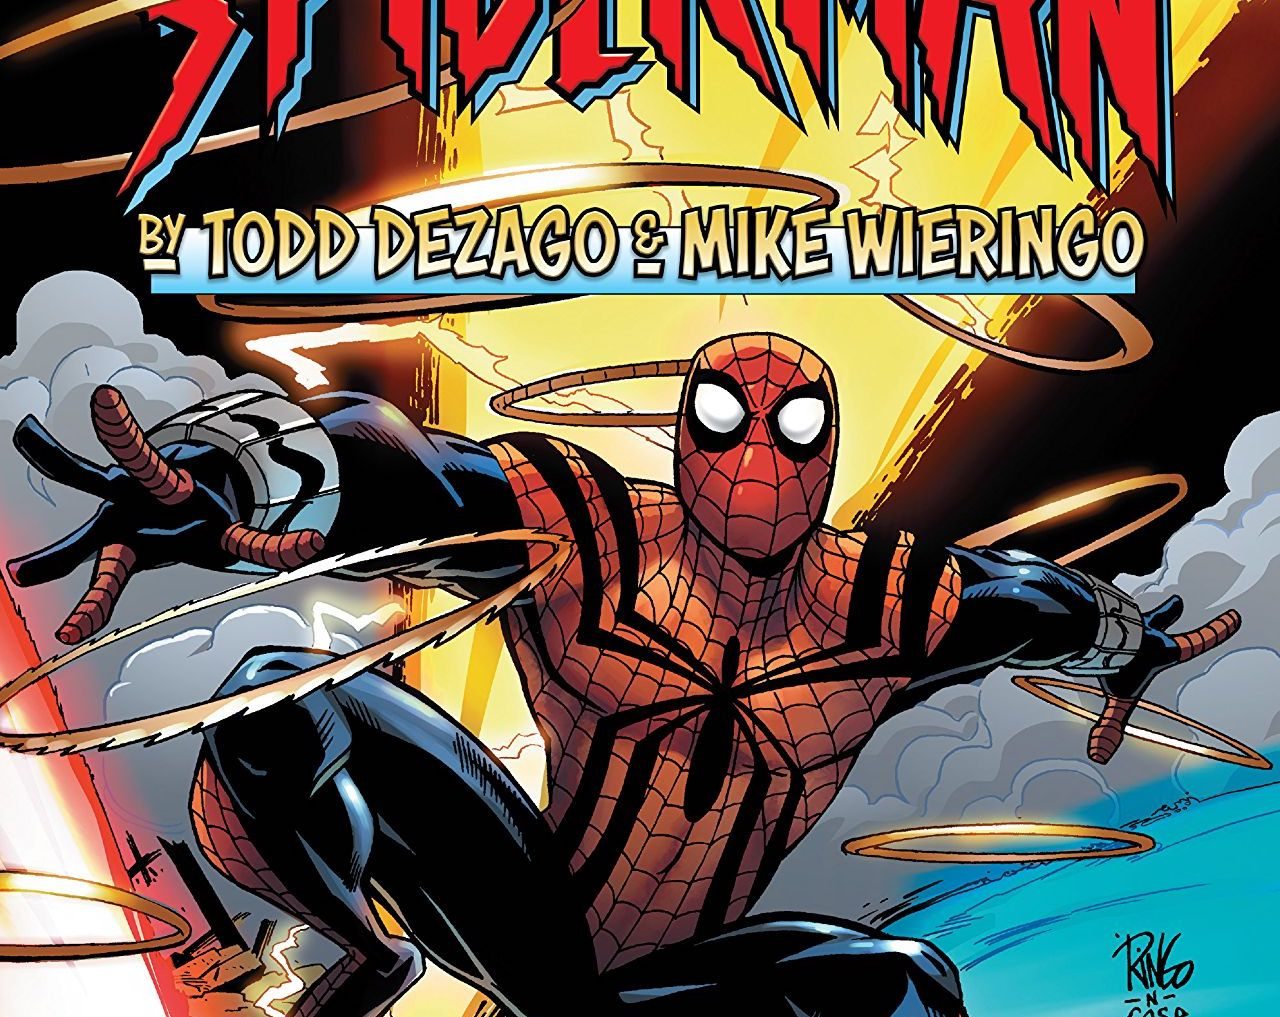 It's All About Fun: 'Spider-Man by Todd DeZago & Mike Wieringo Vol. 1' Review